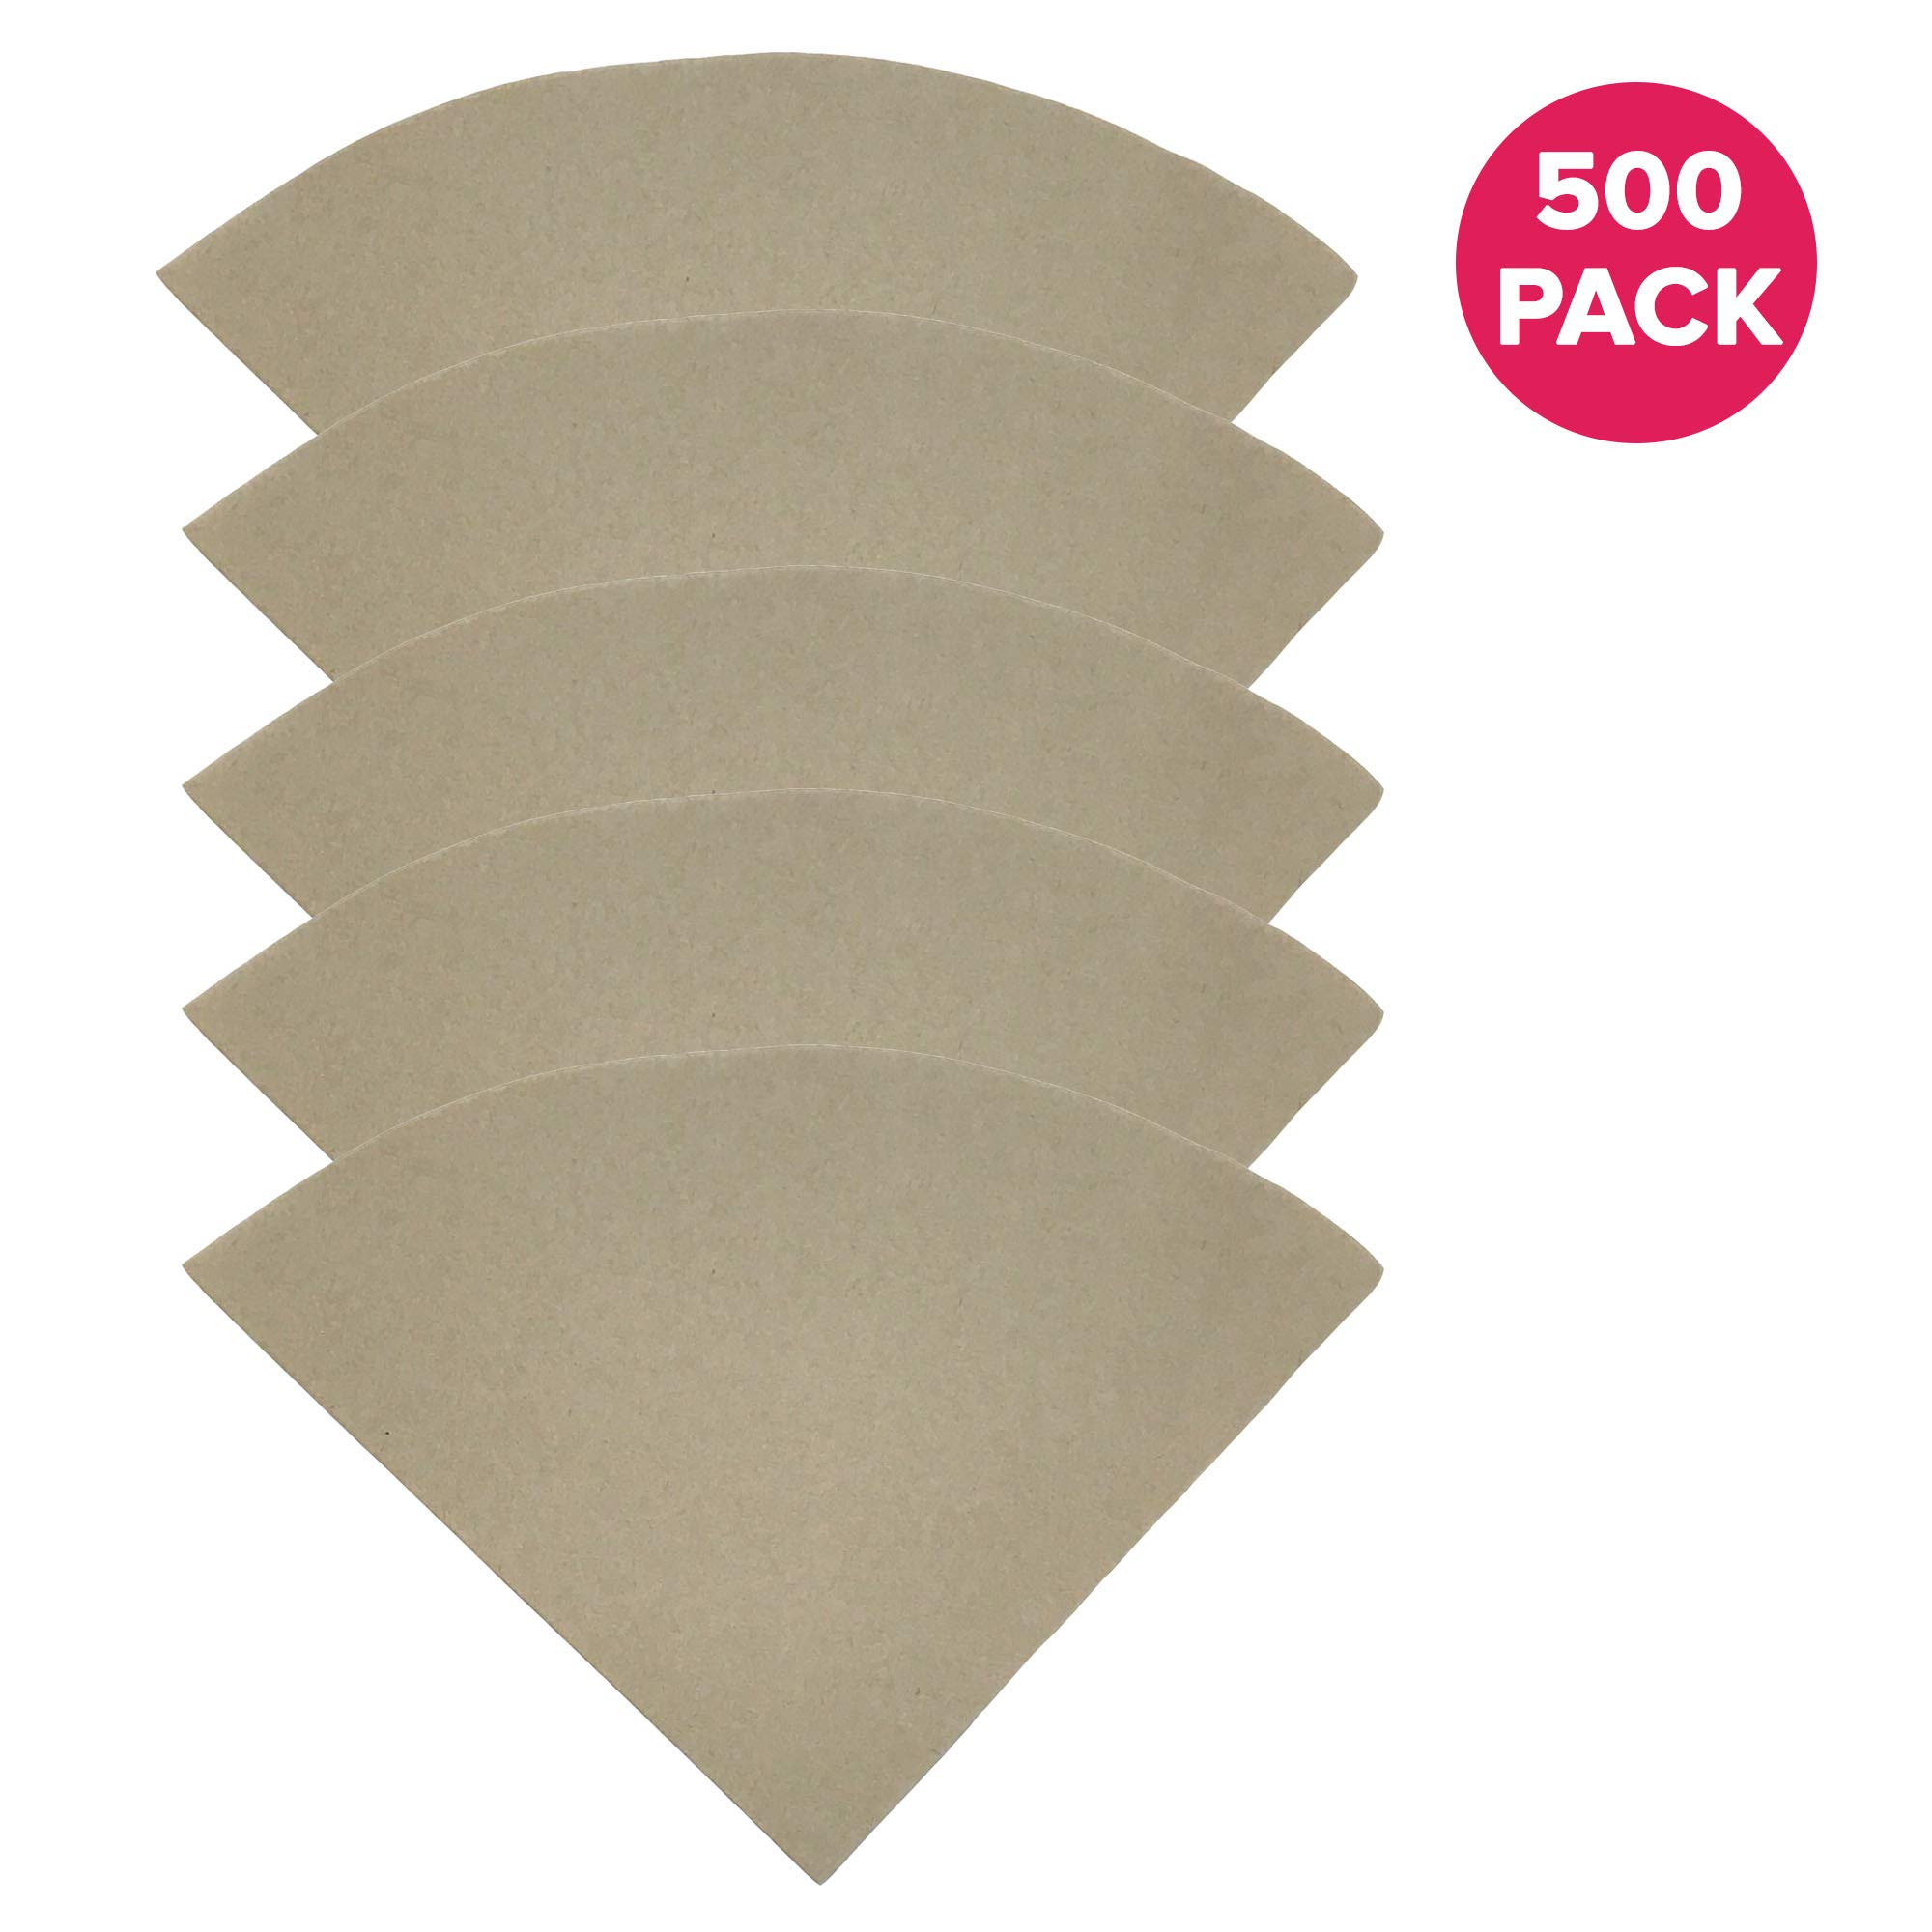 Think Crucial 500PK Compatible Replacement Unbleached Paper Coffee Filters For 6, 8 & 10 Cup Chemex-Brand Coffee Makers